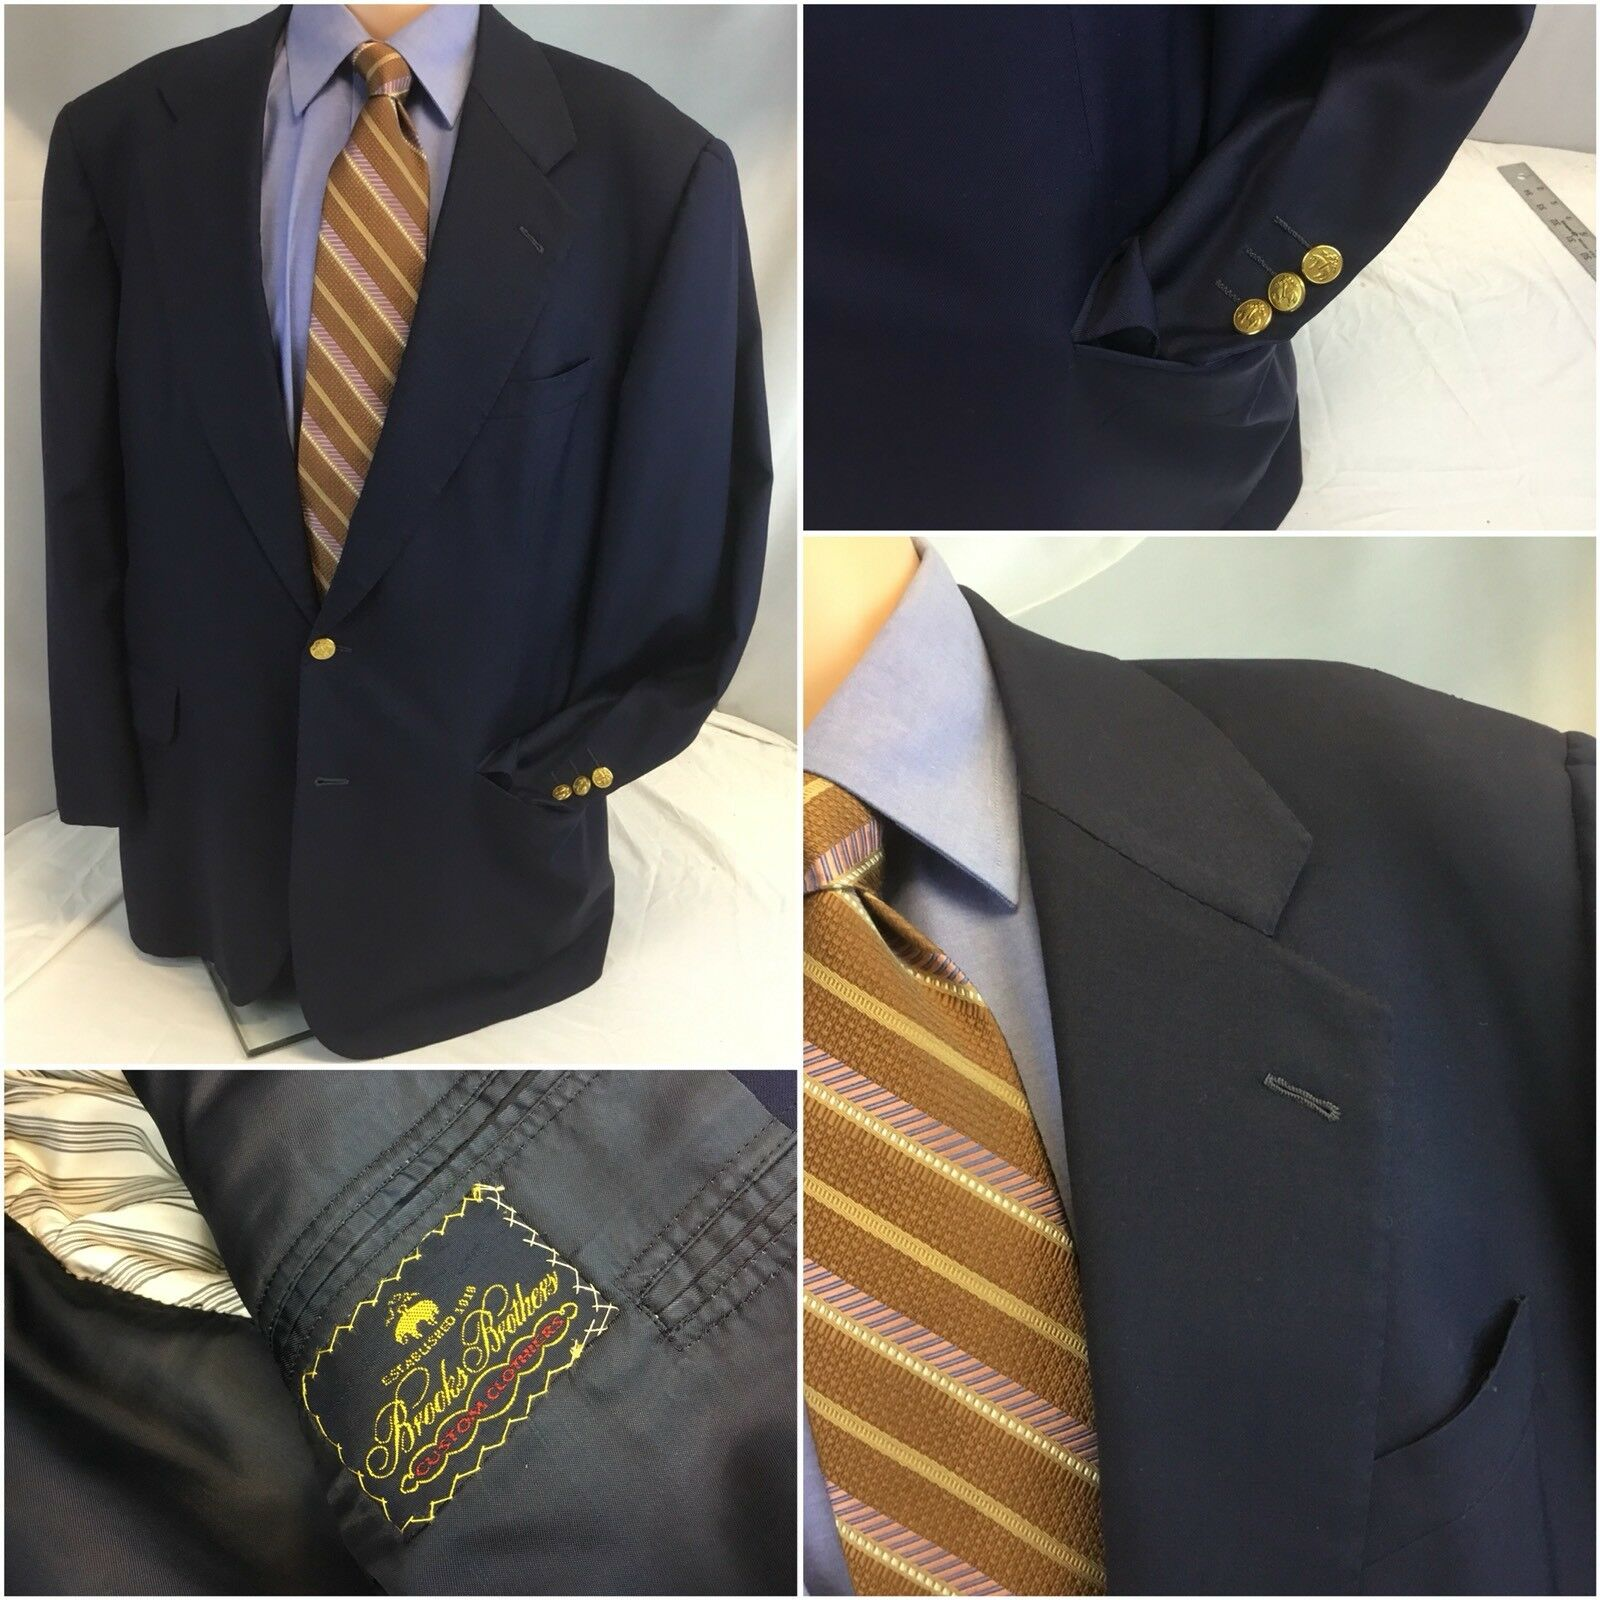 Brooks Brothers Blazer 42R Blau 2b Gold Engraved Custom Clothiers 42 R YGI H8-48